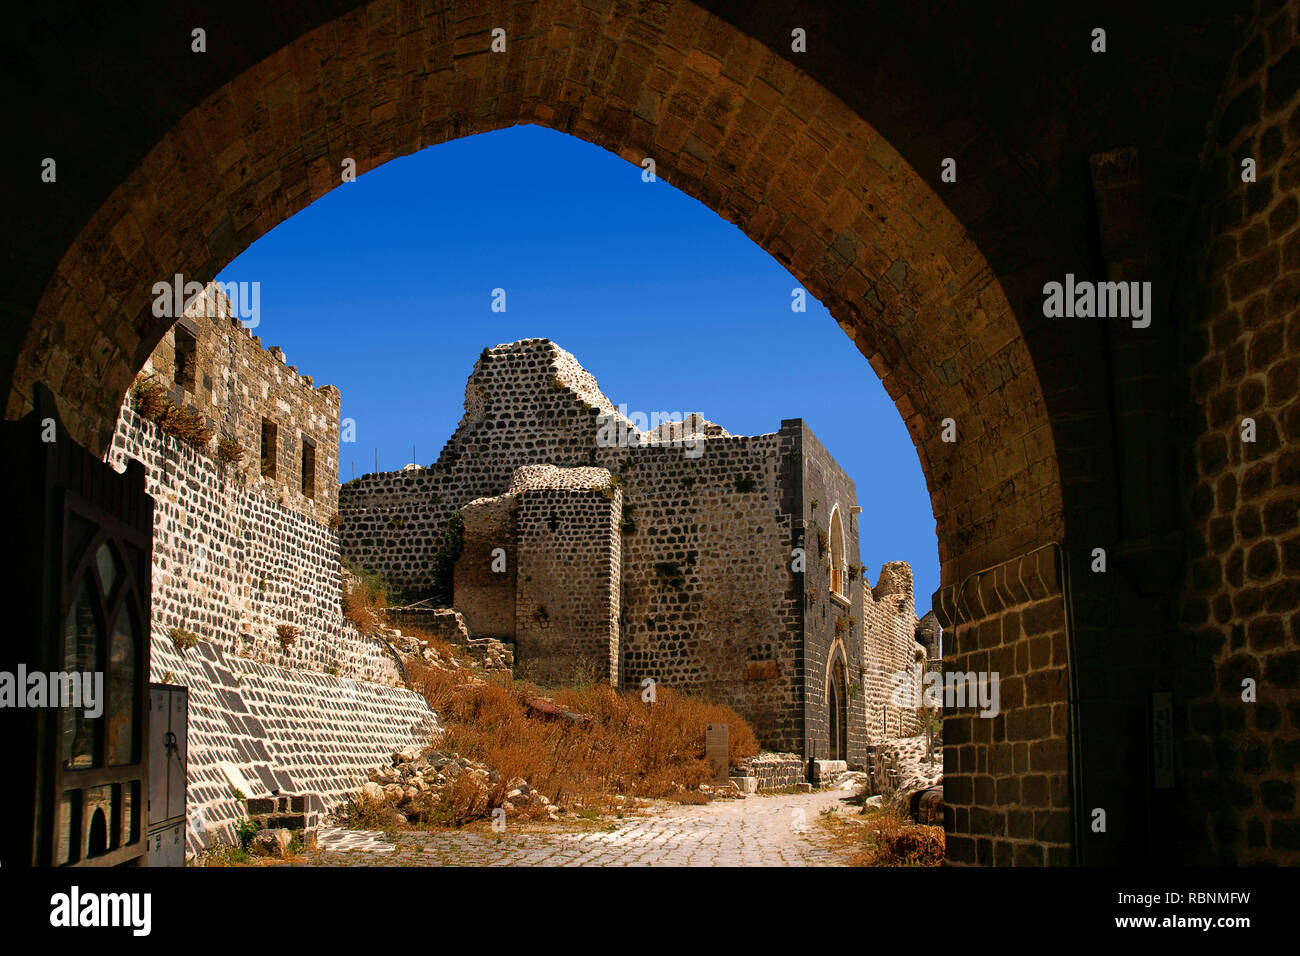 The Margat castle of the crusaders, entrance gate. Marqab, Syria, Middle East - Stock Image